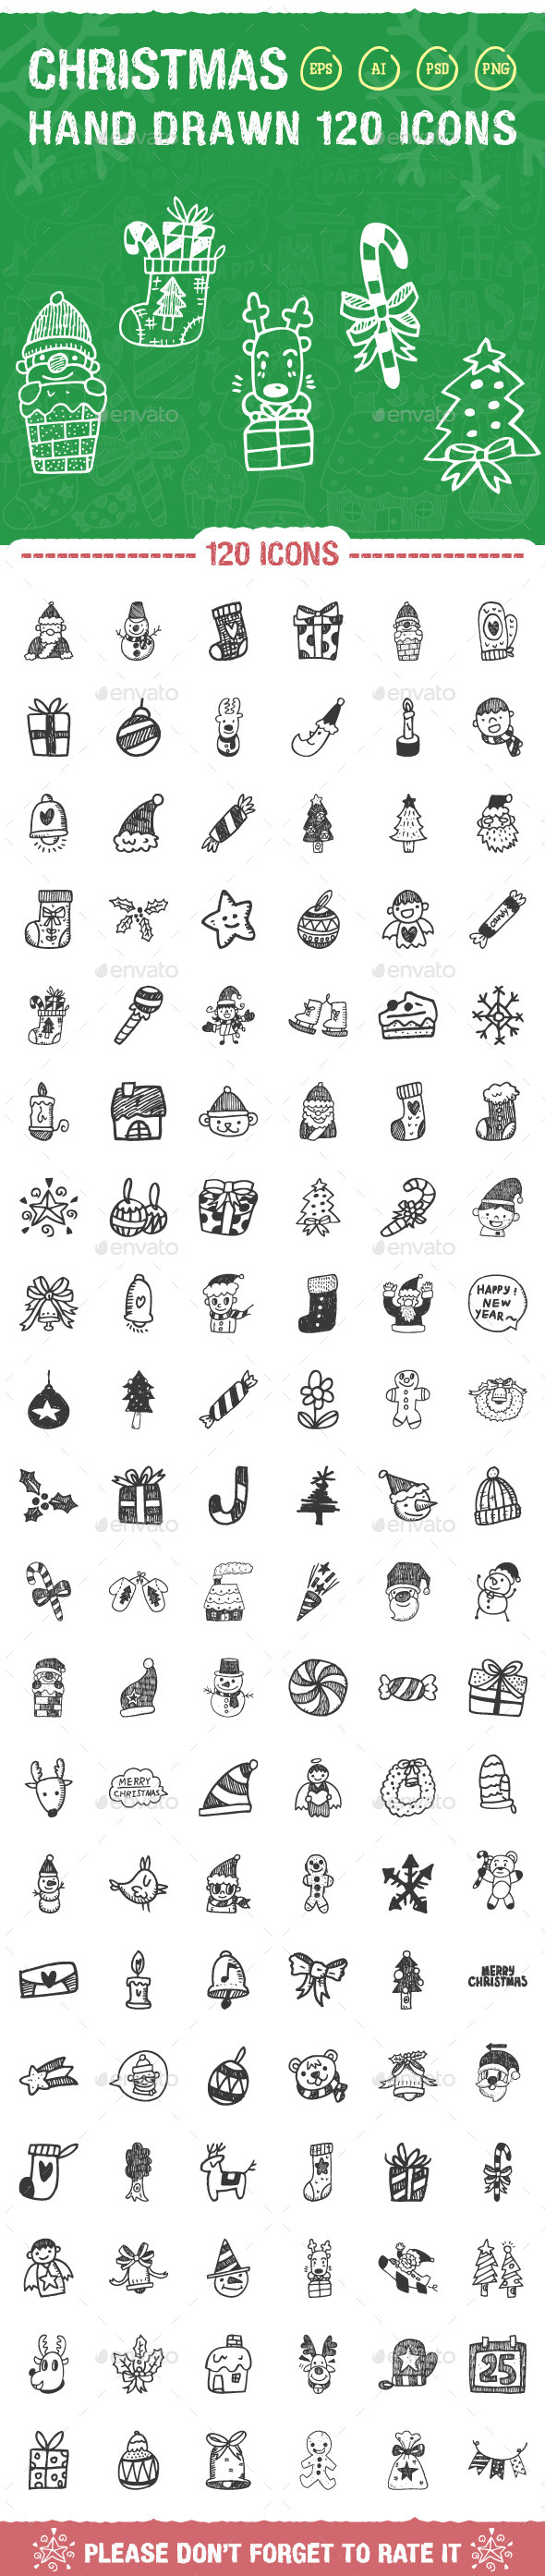 120 Hand Drawn Christmas Icons